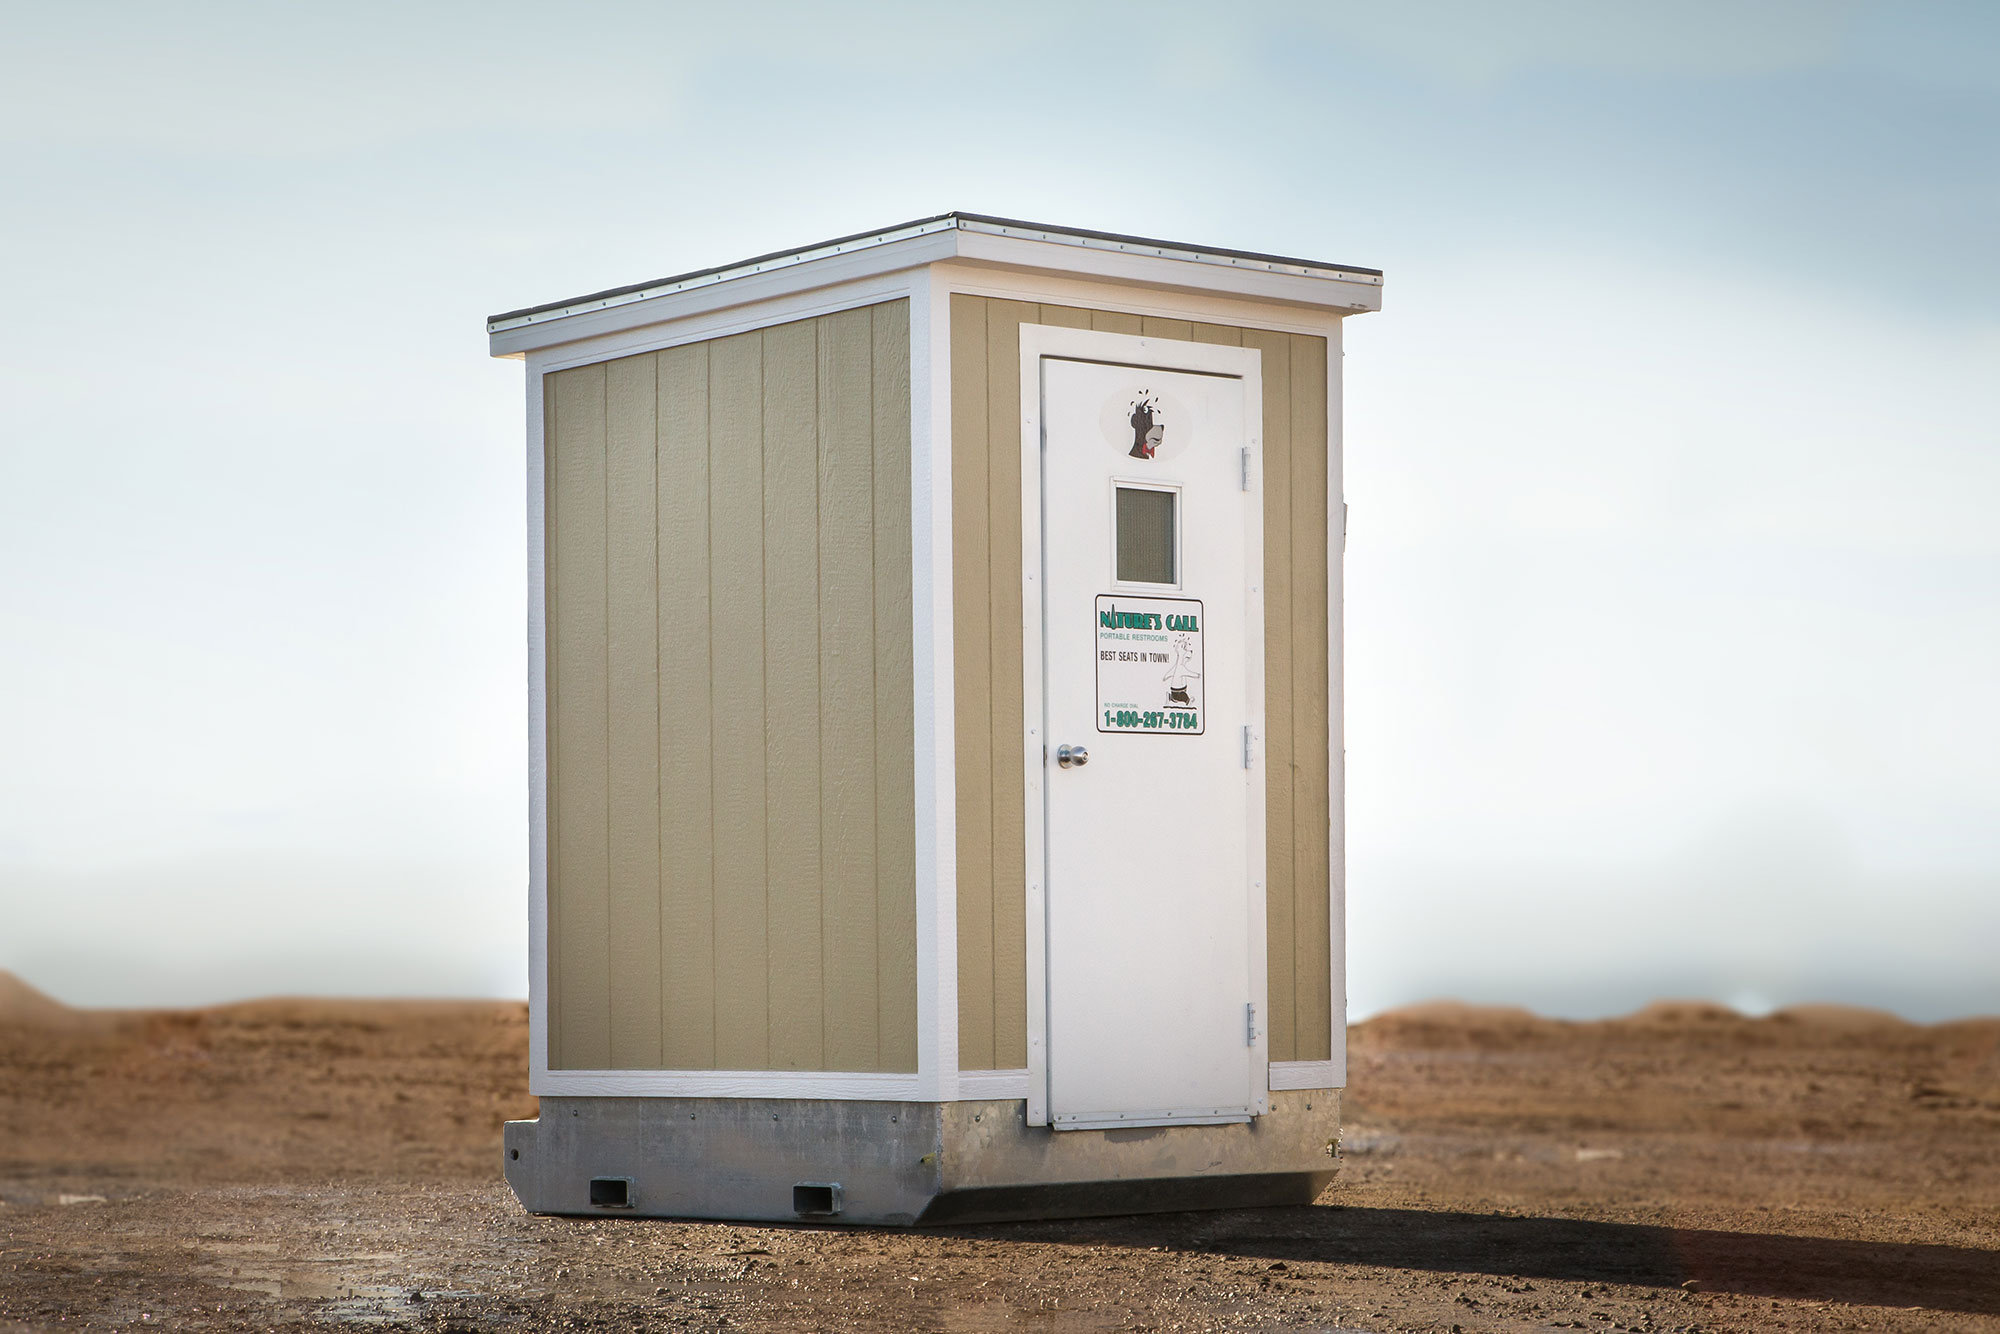 A heated portable restroom